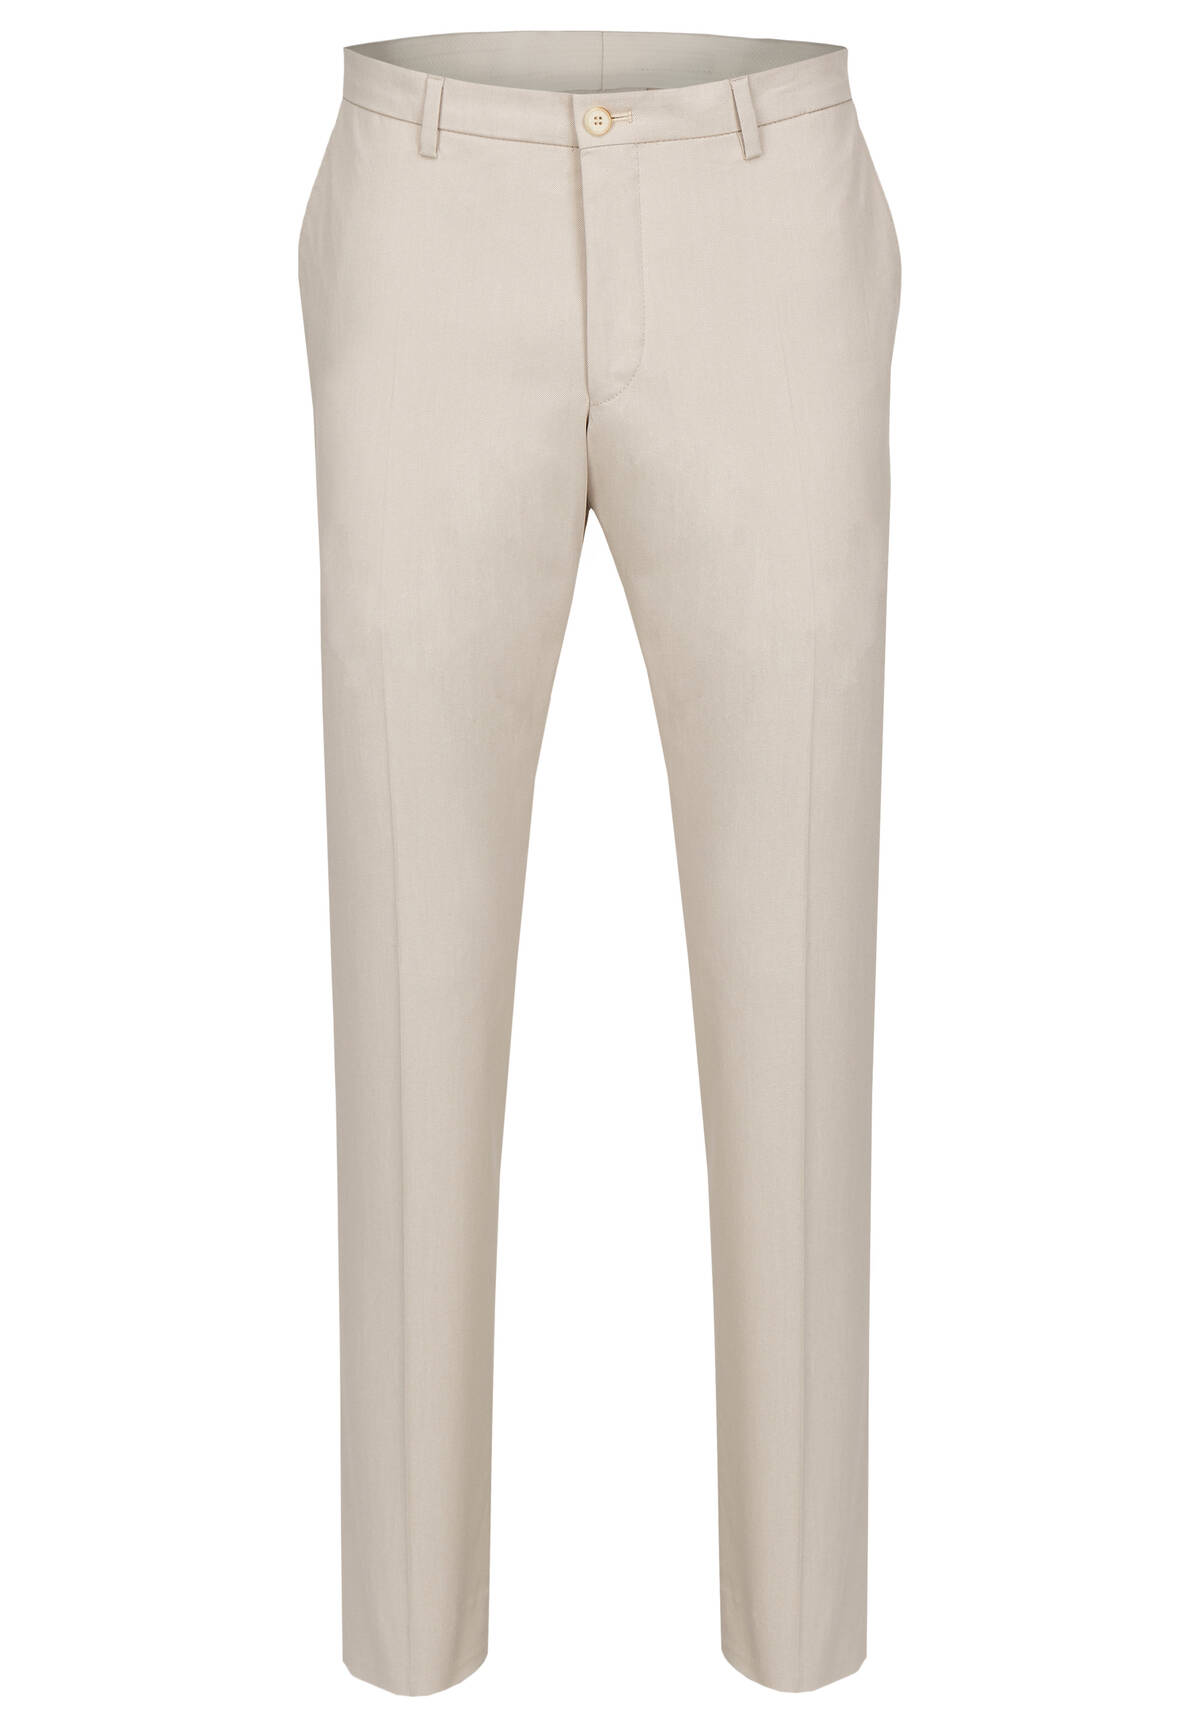 DH-XTENSION Pantalon de costume /